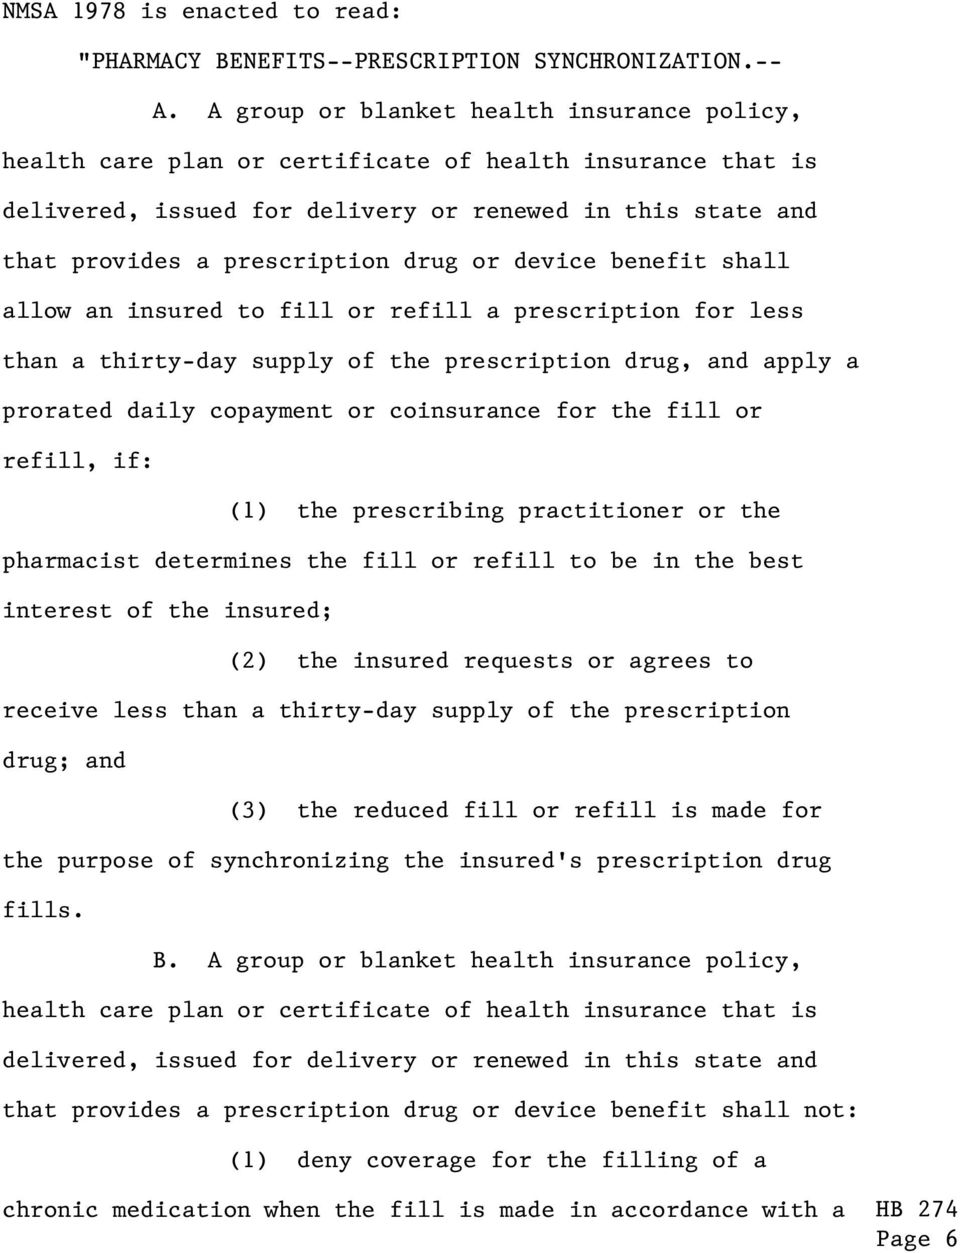 or device benefit shall allow an insured to fill or refill a prescription for less than a thirty-day supply of the prescription drug, and apply a prorated daily copayment or coinsurance for the fill